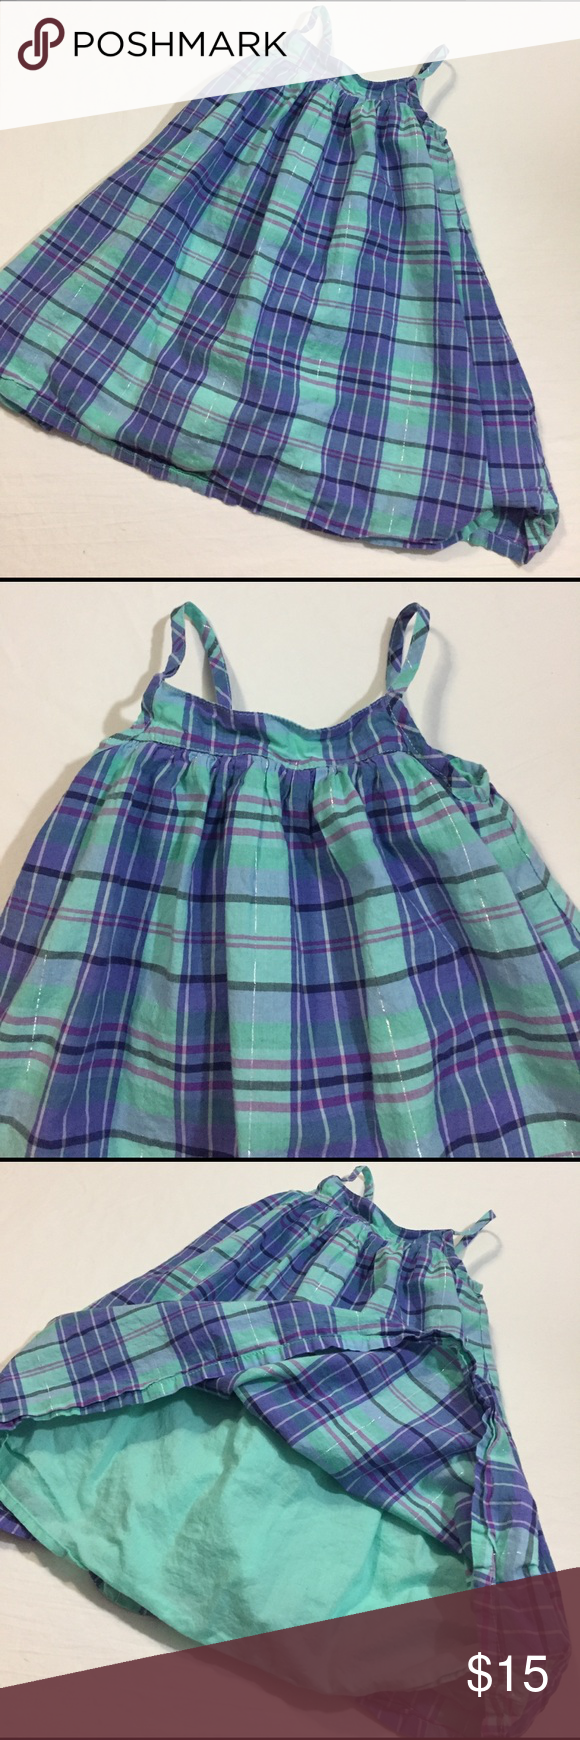 BabyGap plaid sundress BabyGap plaid sundress great preloved condition GAP Dresses